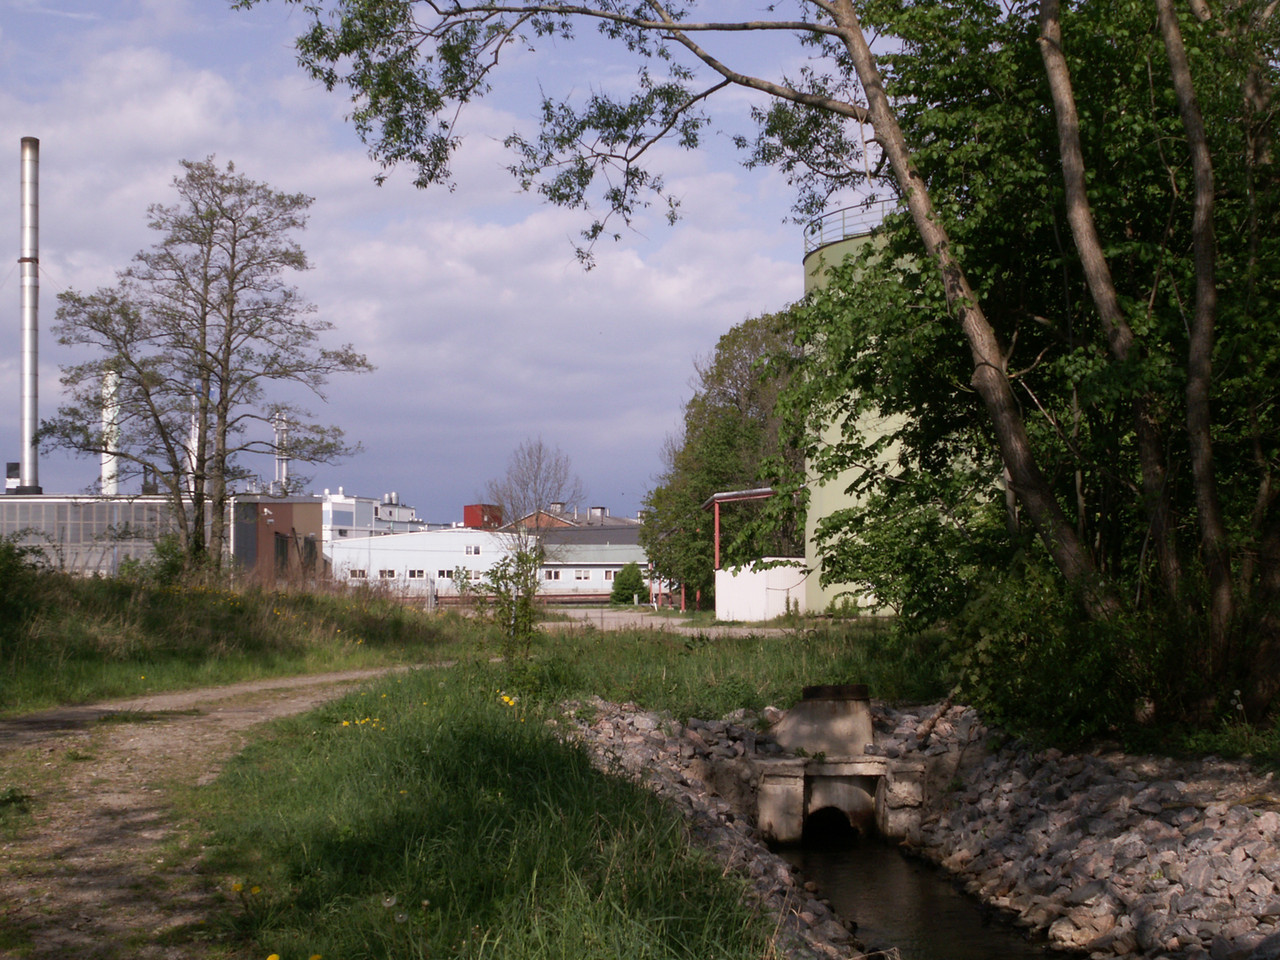 Behind the communal sewage plant, Gorsingeholmsvägen. The Pfizer/DSM sites seen from the east. 2007 May 19 @ 08:58